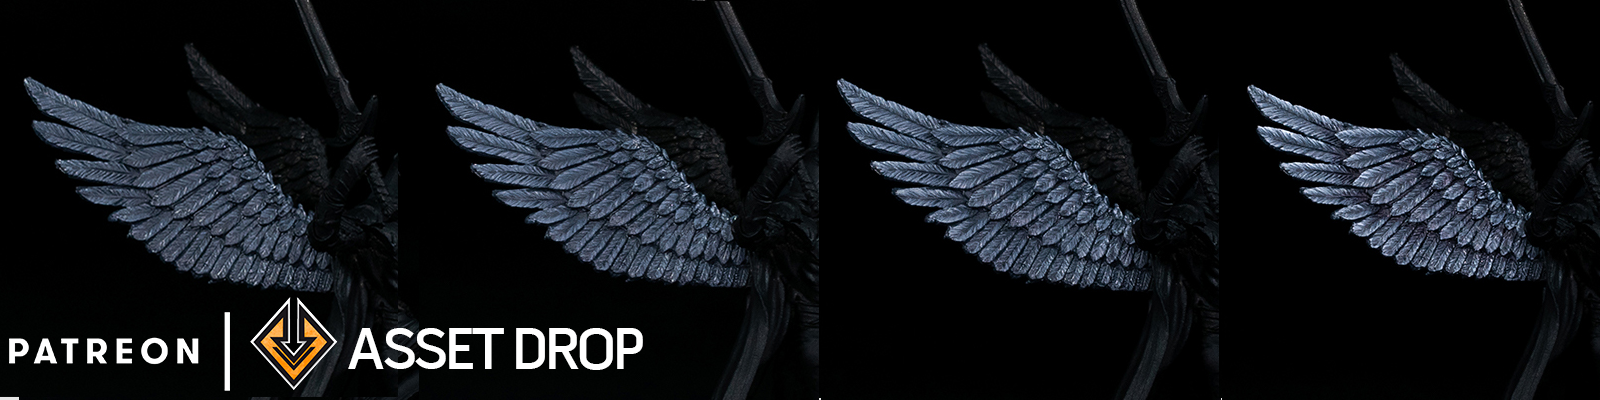 asset drop patreon black feathers tutorial